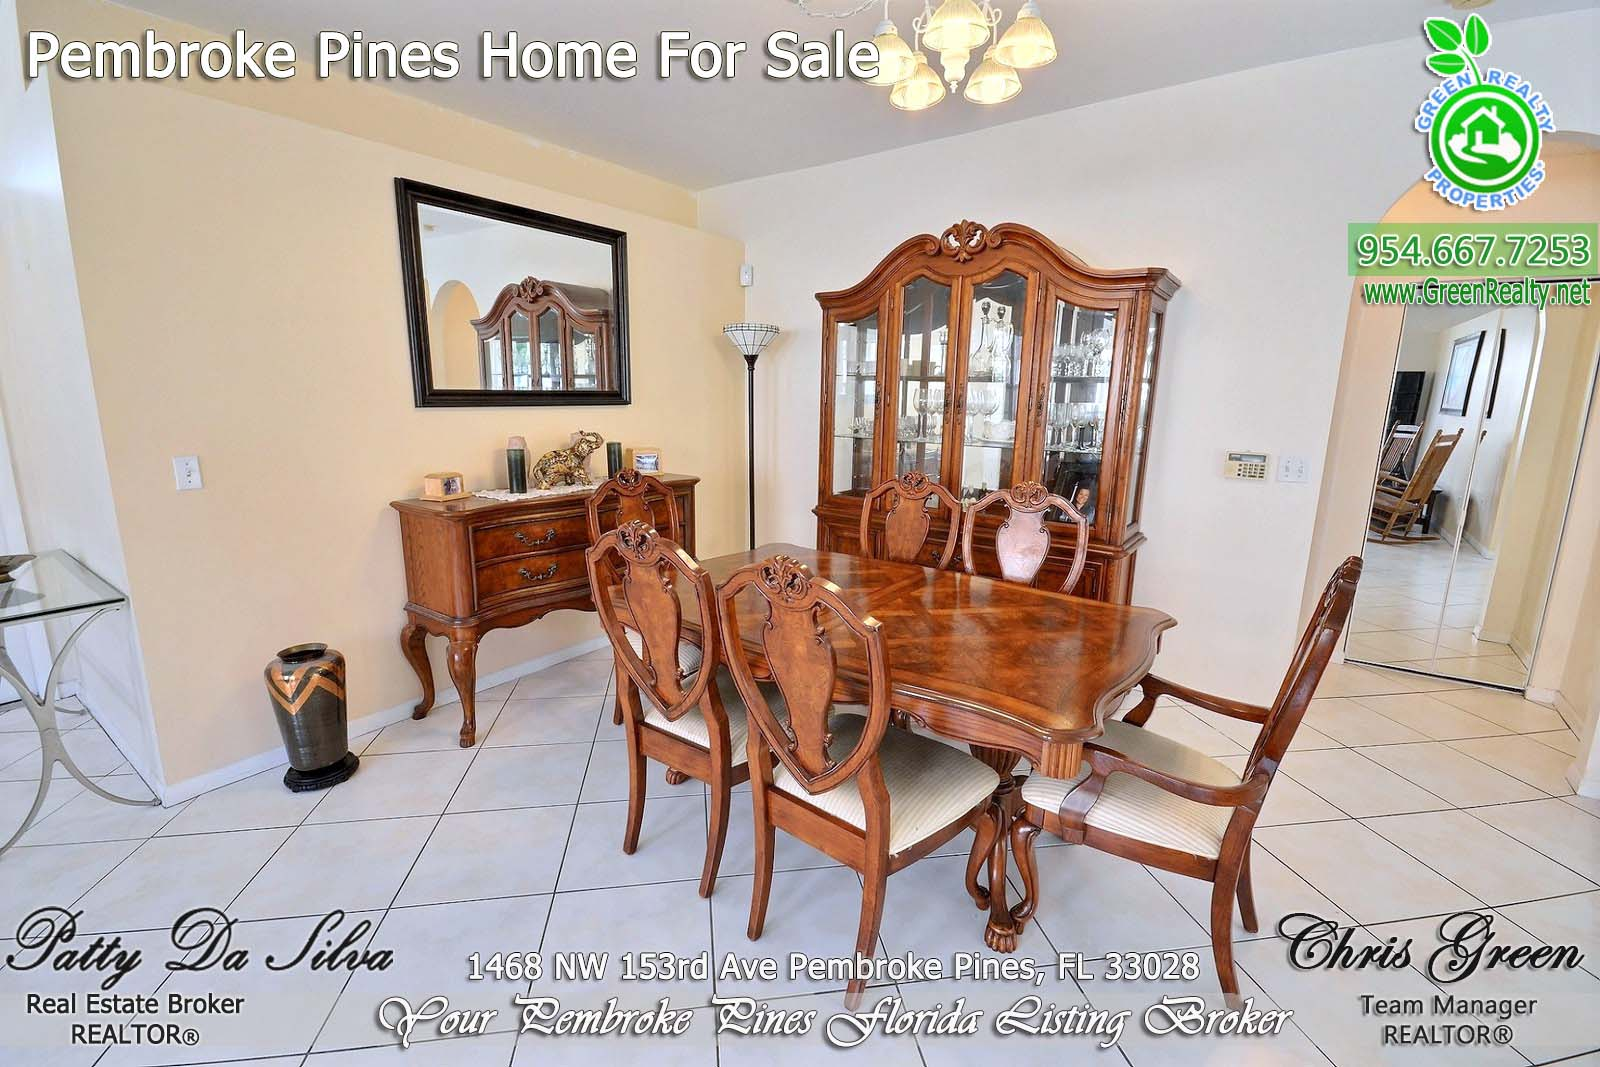 5 Pembroke Pines Homes For Sale (4)